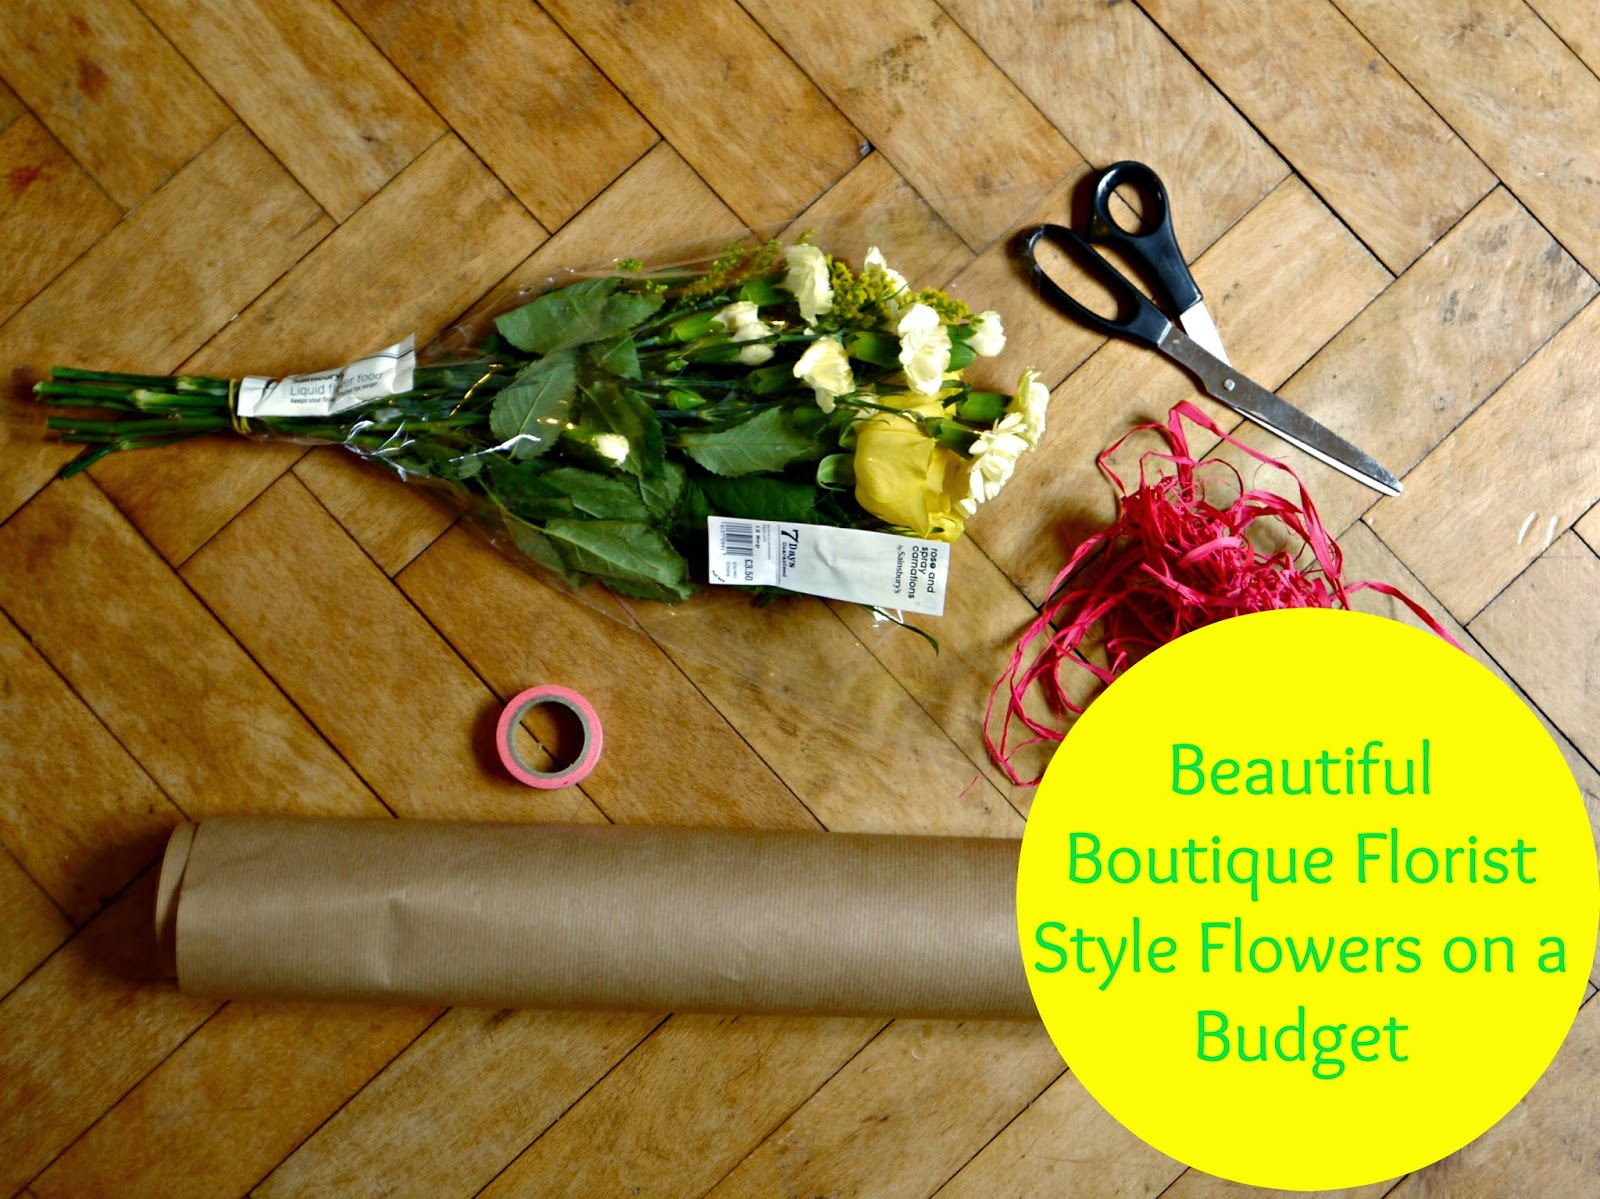 Beautiful Boutique Florist Style Flowers on a Budget